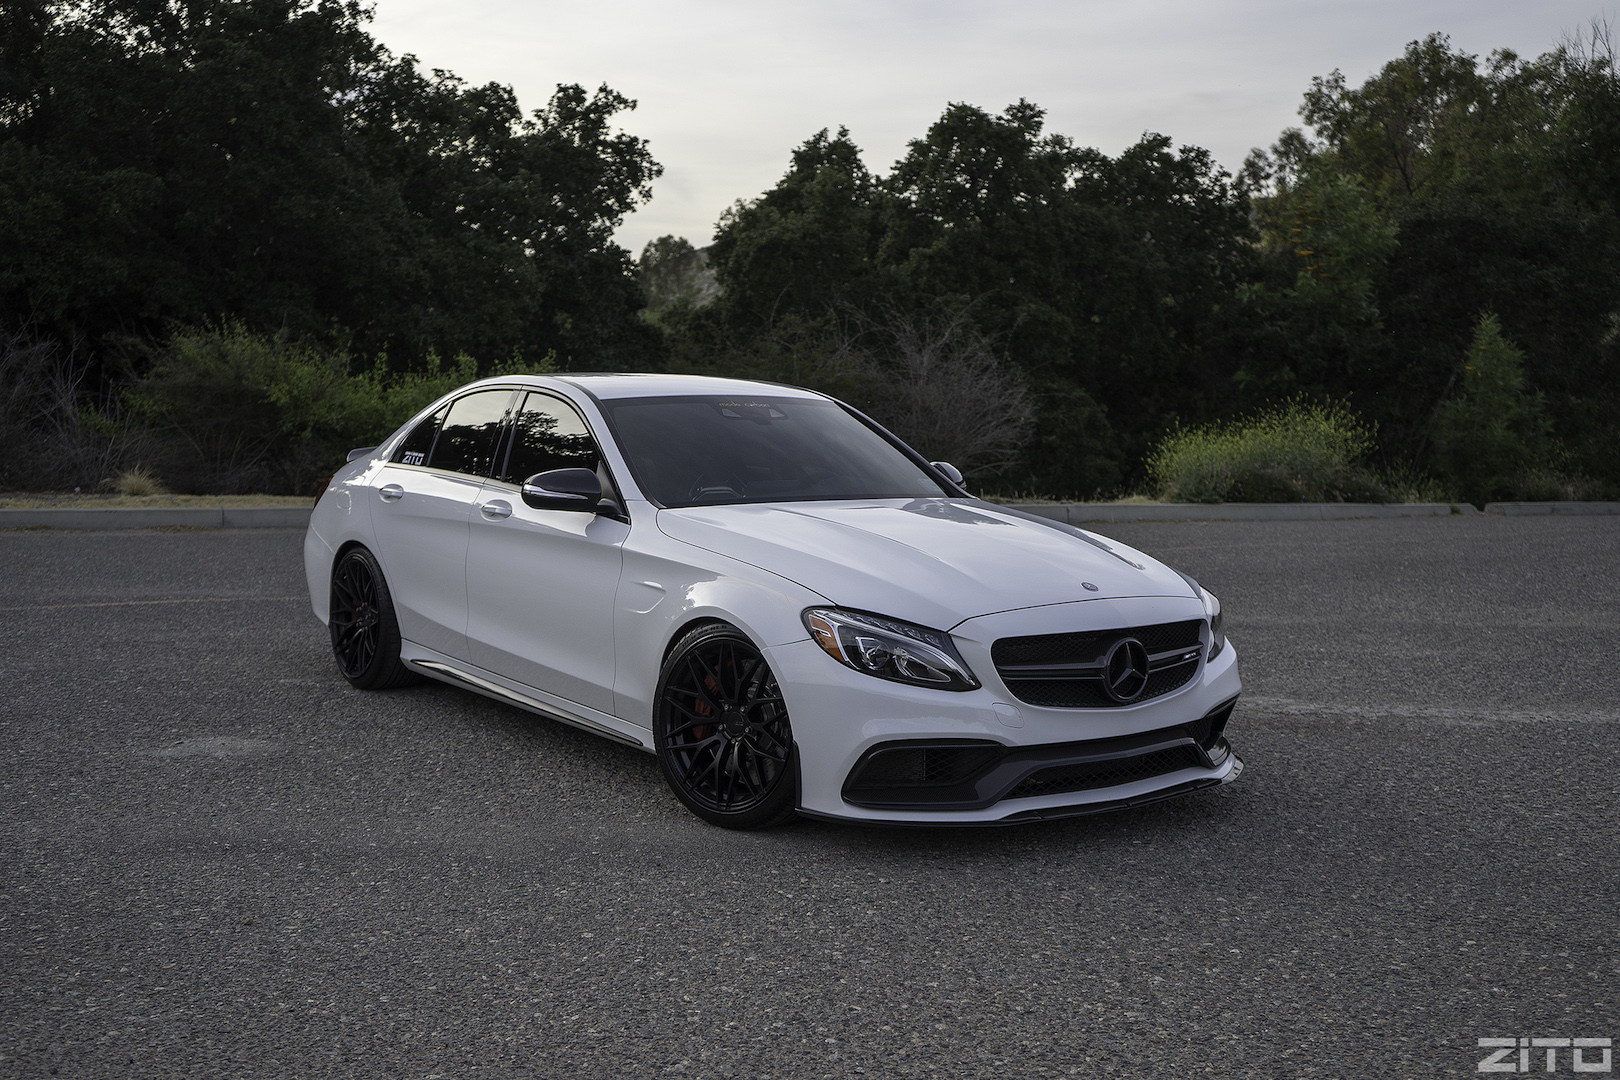 Mercedes Benz C63 AMG W205 White Black ZF01